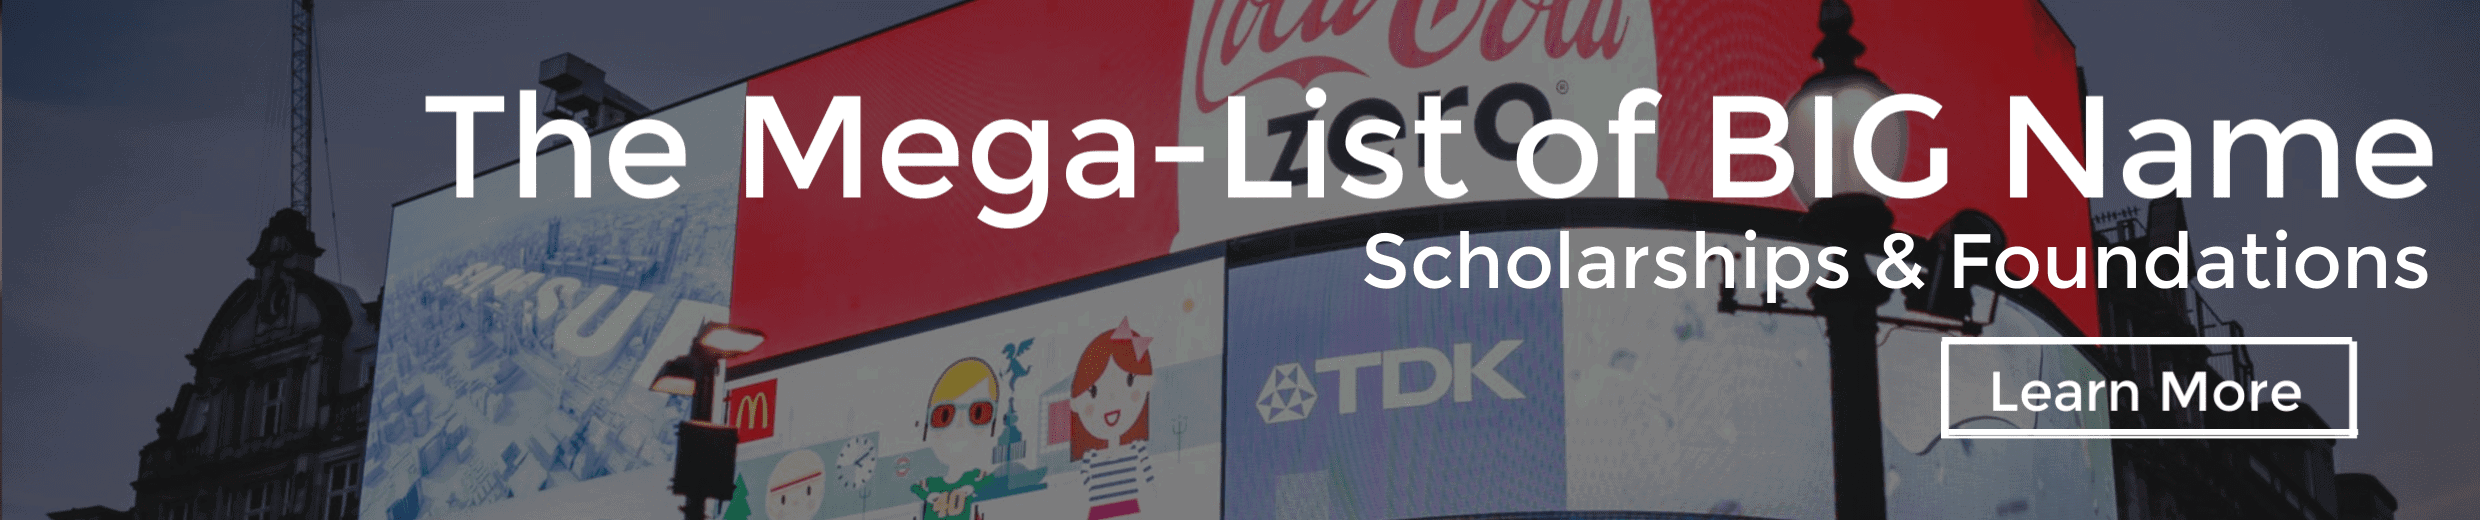 The Mega-List of BIG Name Scholarships & Foundations